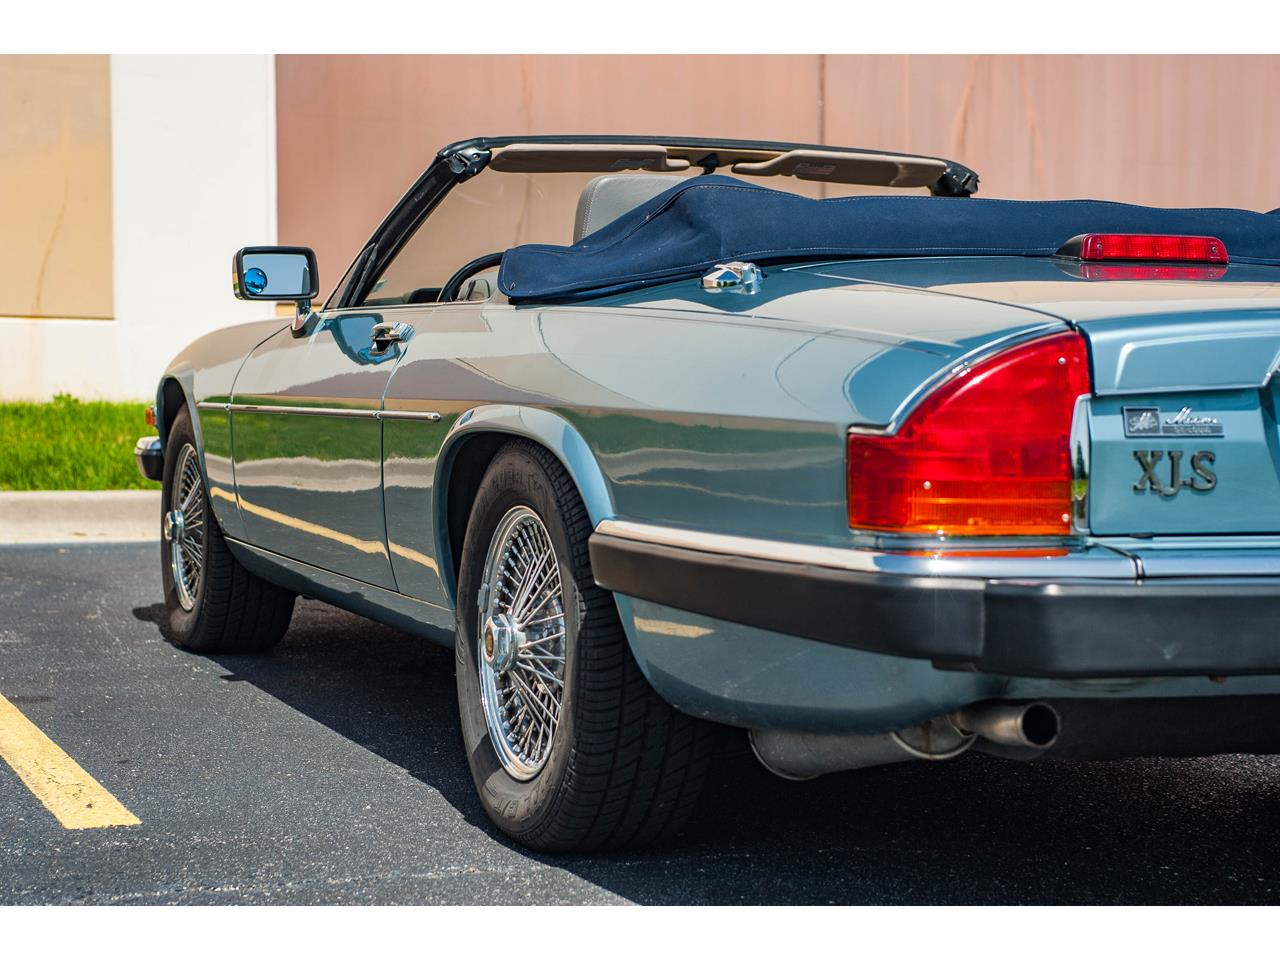 Large Picture of '90 Jaguar XJS located in O'Fallon Illinois - $15,500.00 Offered by Gateway Classic Cars - St. Louis - QB9E